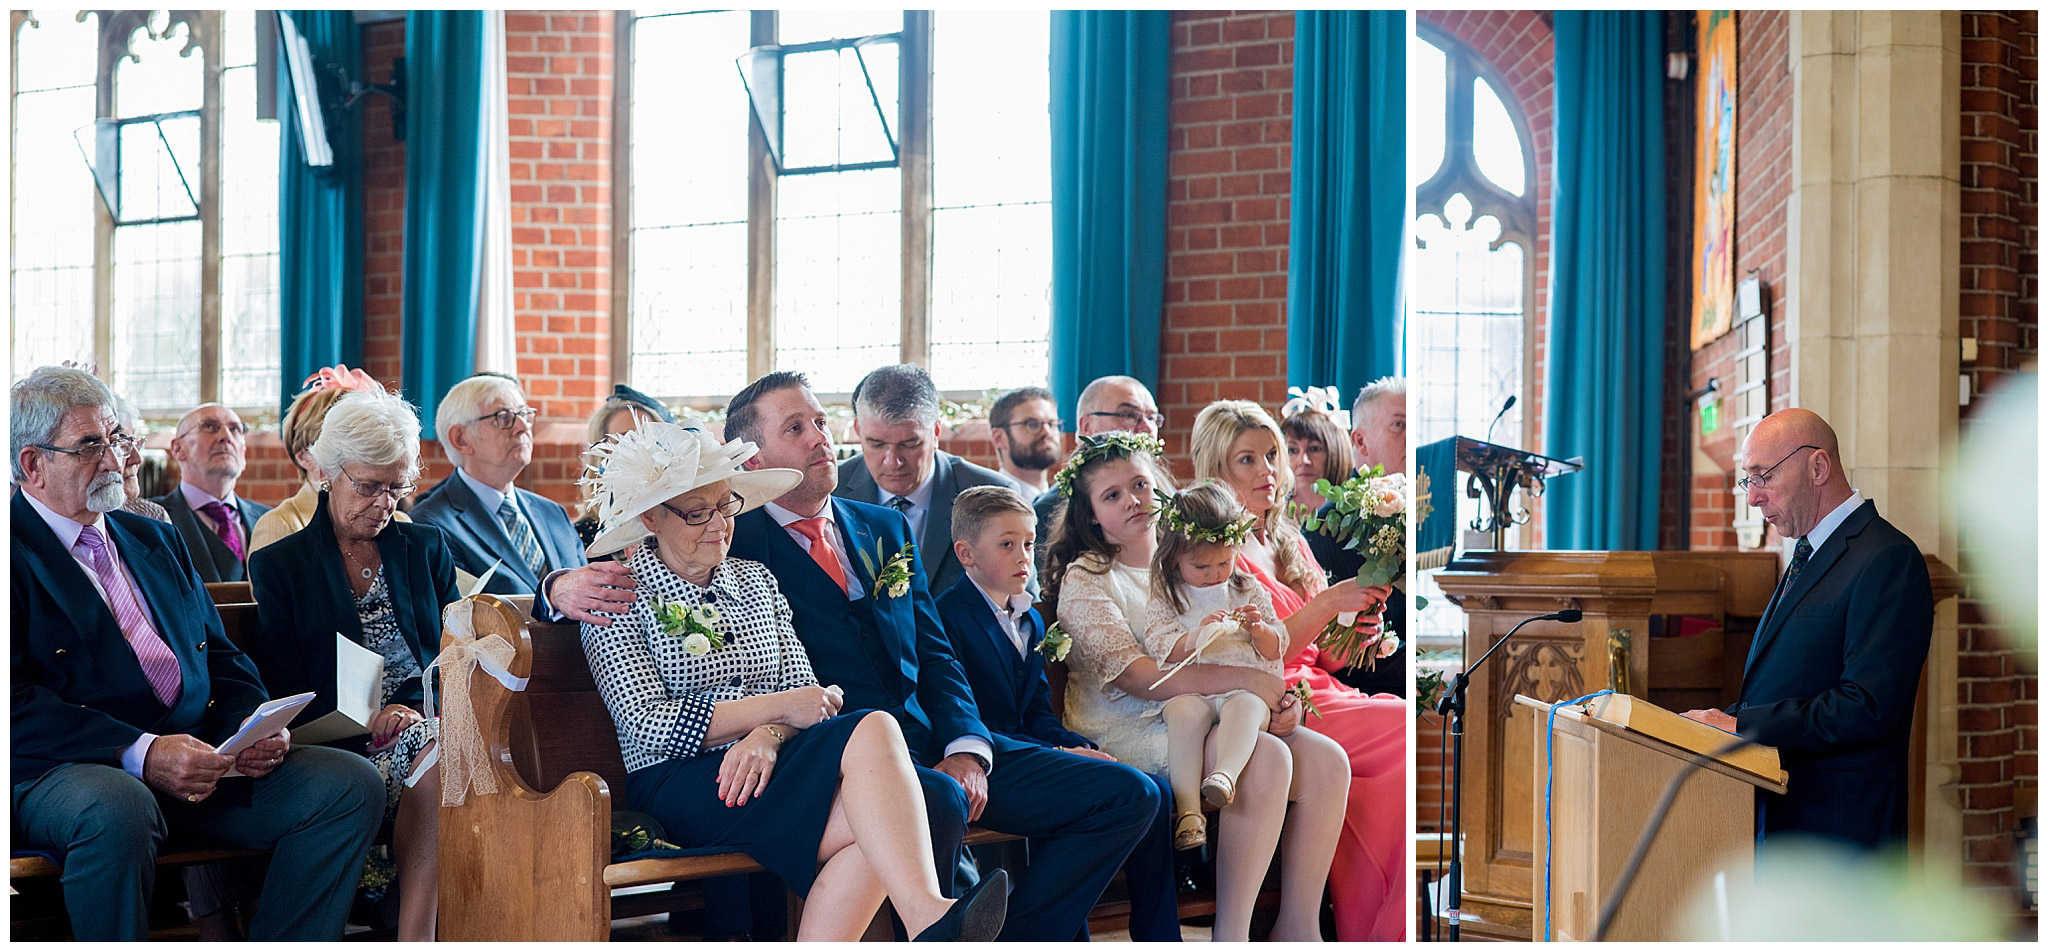 Katie-&-Steve-Victoria-Park-Methodist-Chruch-Winton-&-The-Manor-Burton-Christchurch-Wedding-22